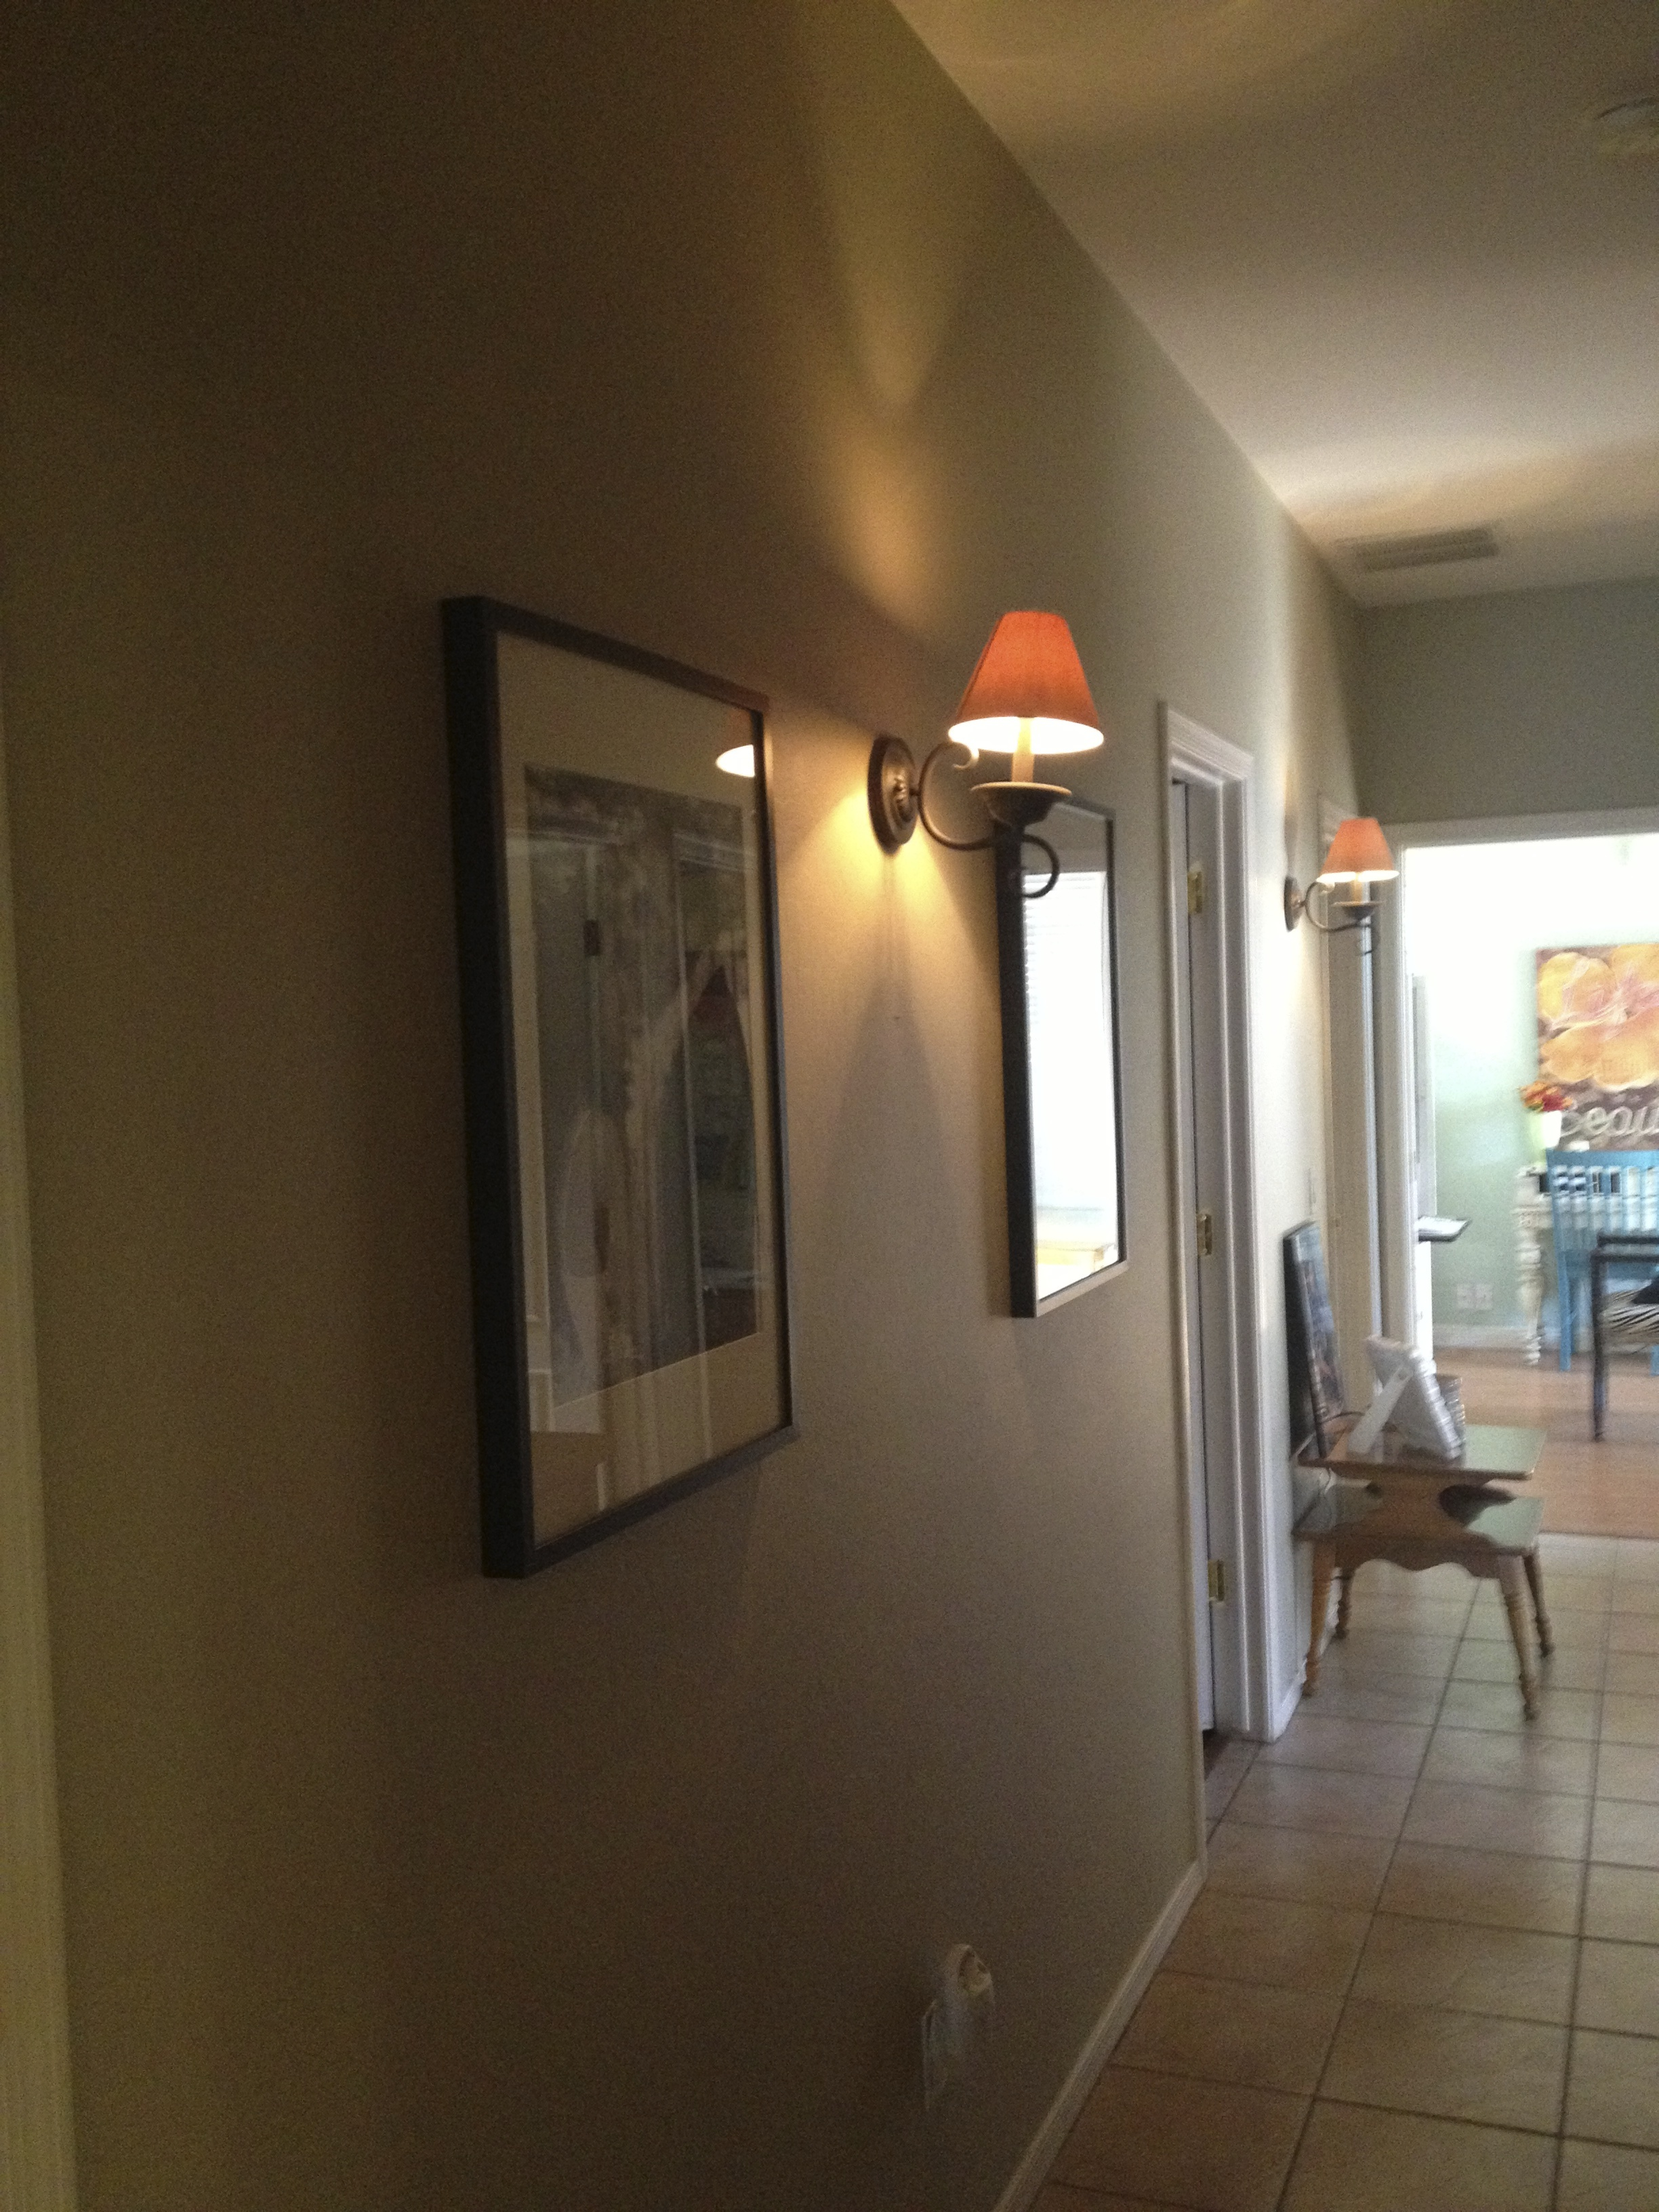 trellis lighting. I Had 2 Big Framed Pictures. . .and THATS IT! Ughh!! Not To Mention, The Lighting In Hallway Was TERRIBLE!! Could Barely See There! Trellis O